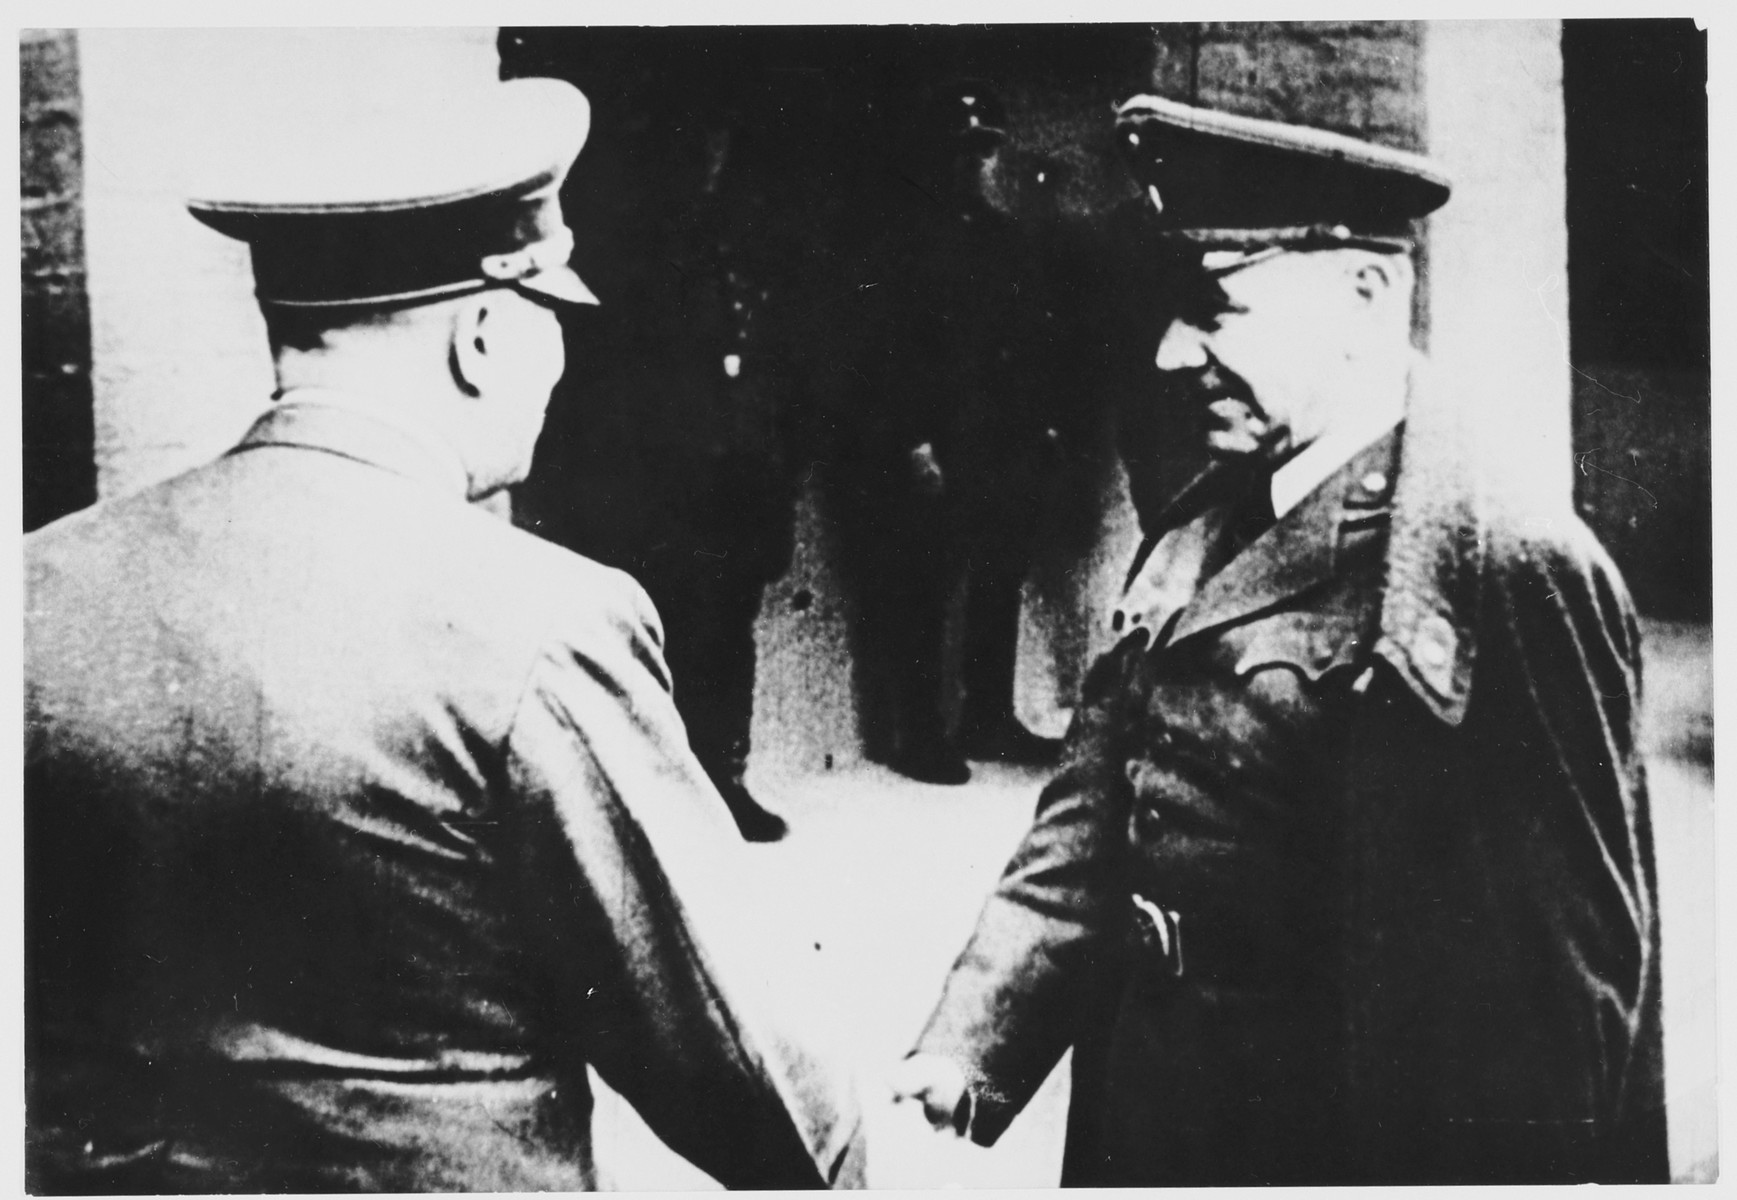 Adolf Hitler shakes hands with Croatian leader Ante Pavelic during an official visit to Croatia.